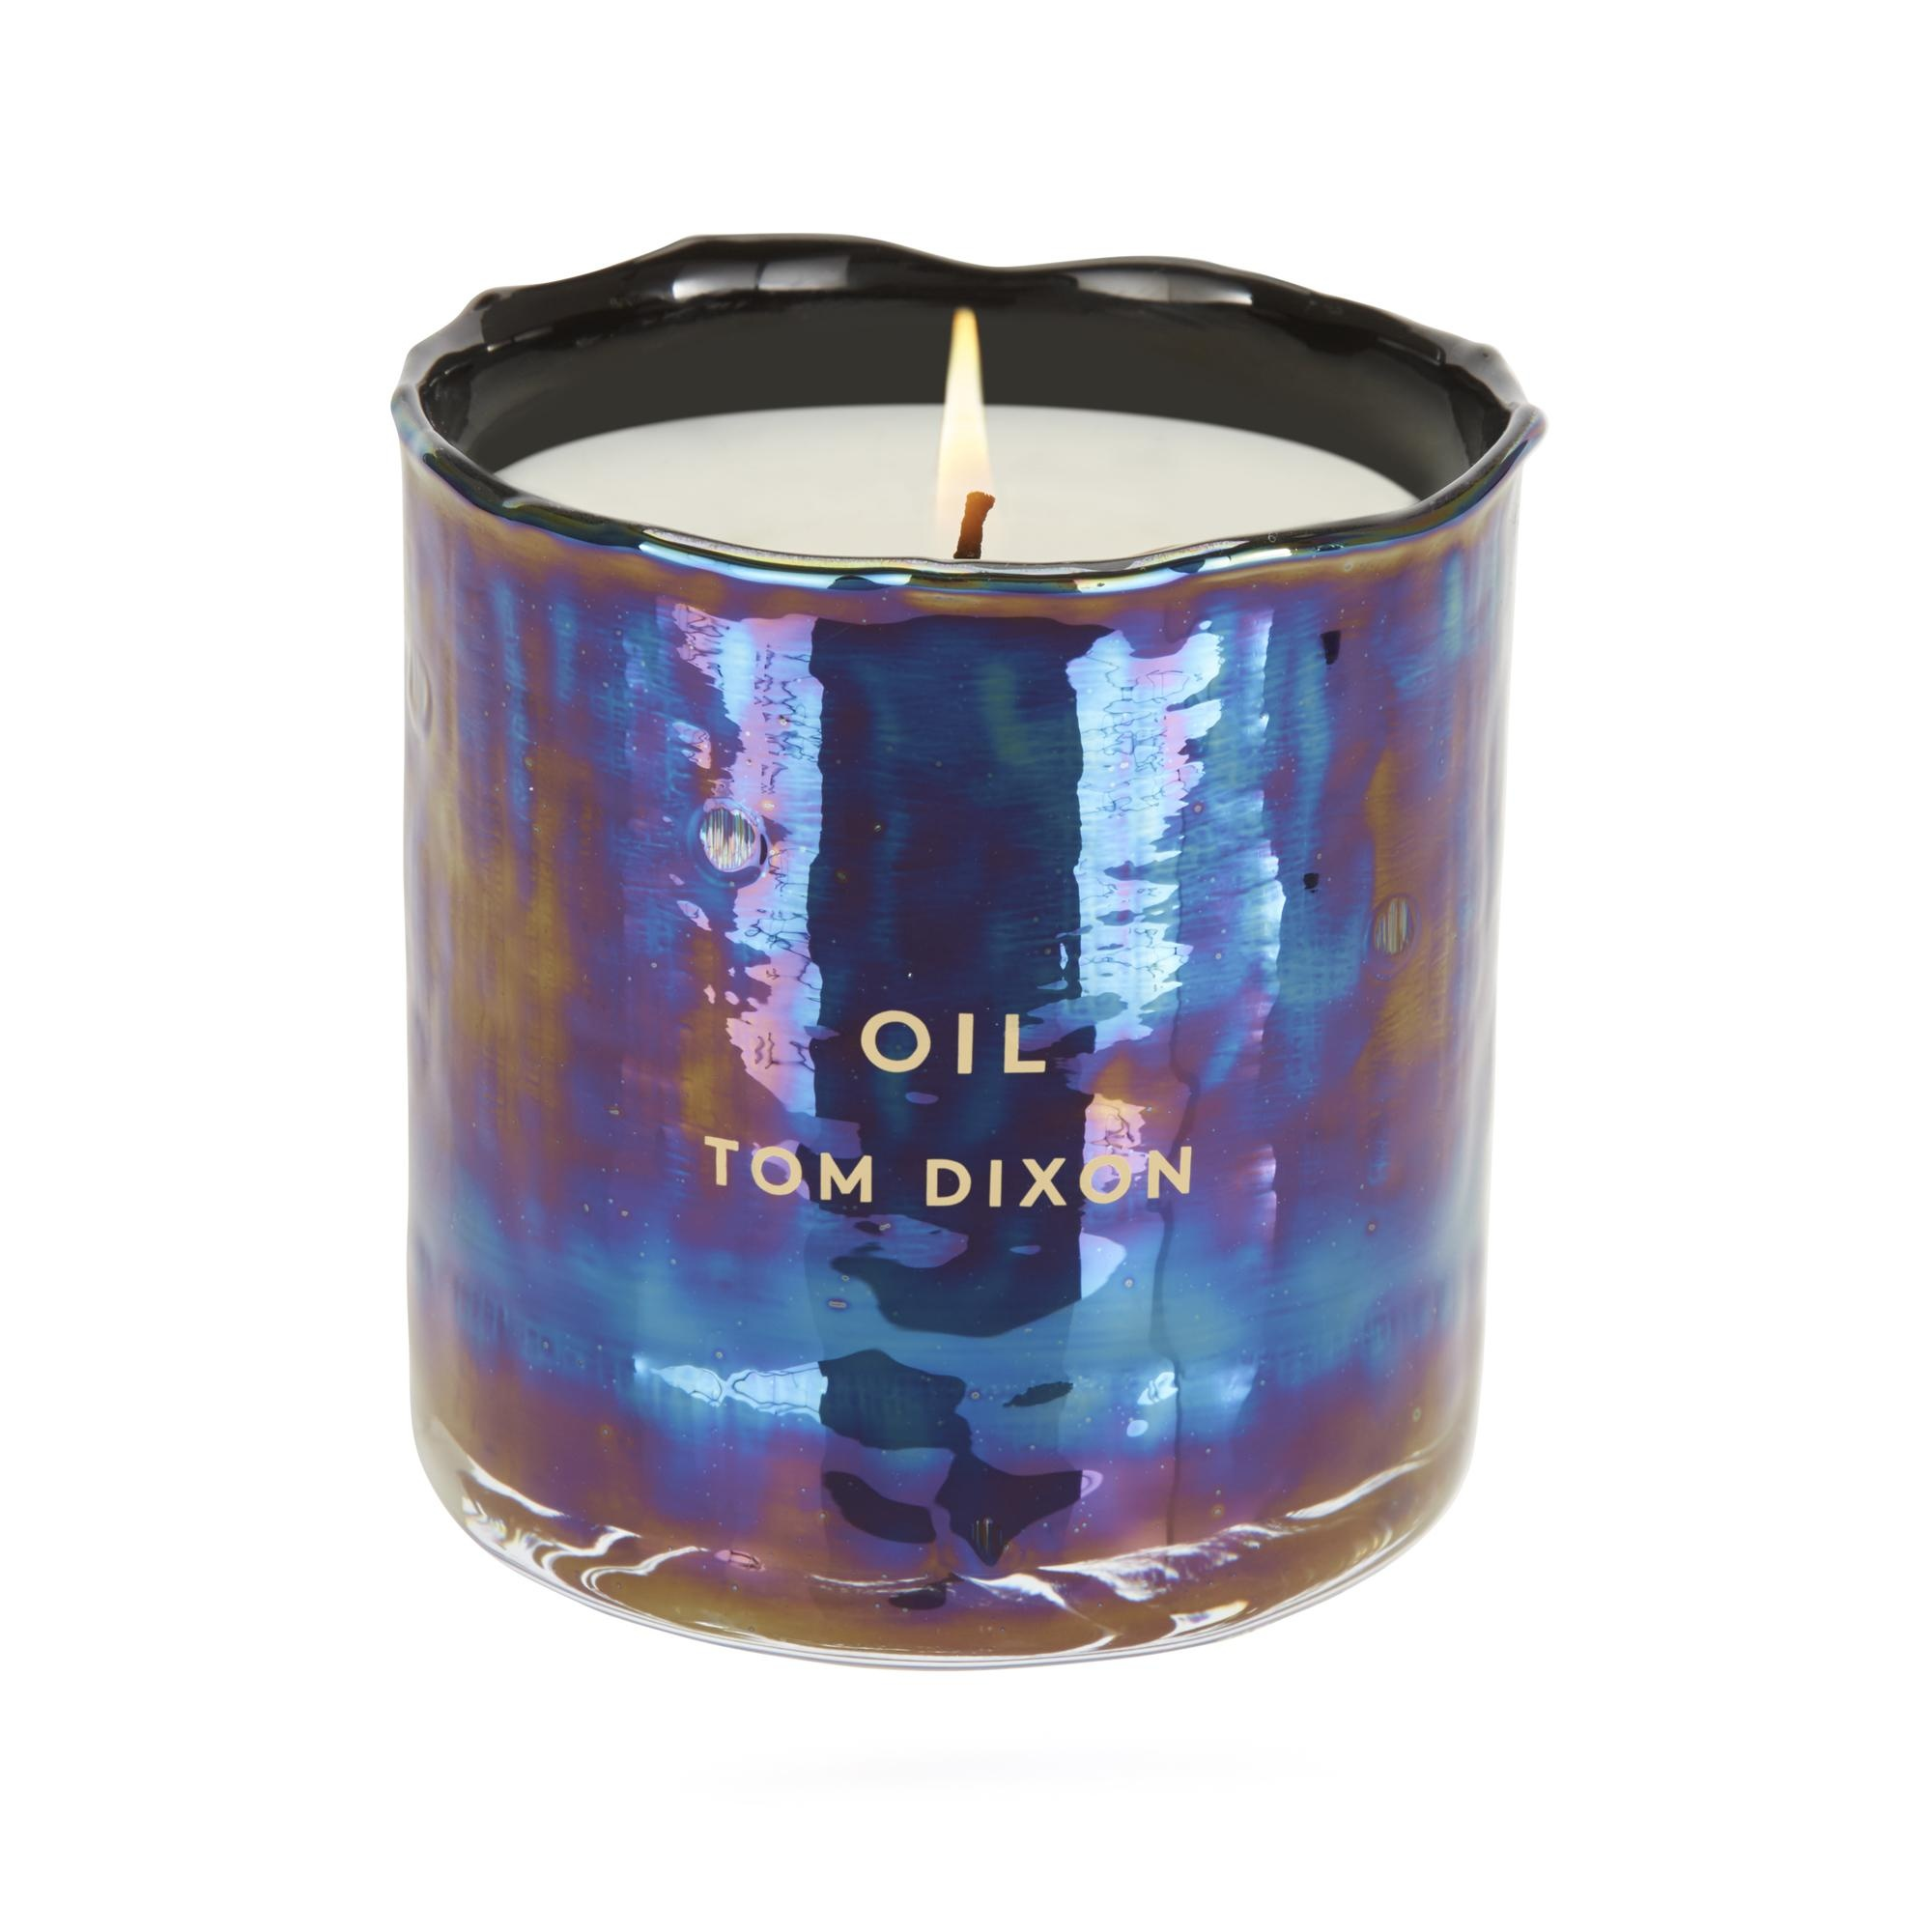 Tom Dixon - Scent Materialism Oil Candle Medium - iridescent/black/H 9.6cm/Ã 9 cm